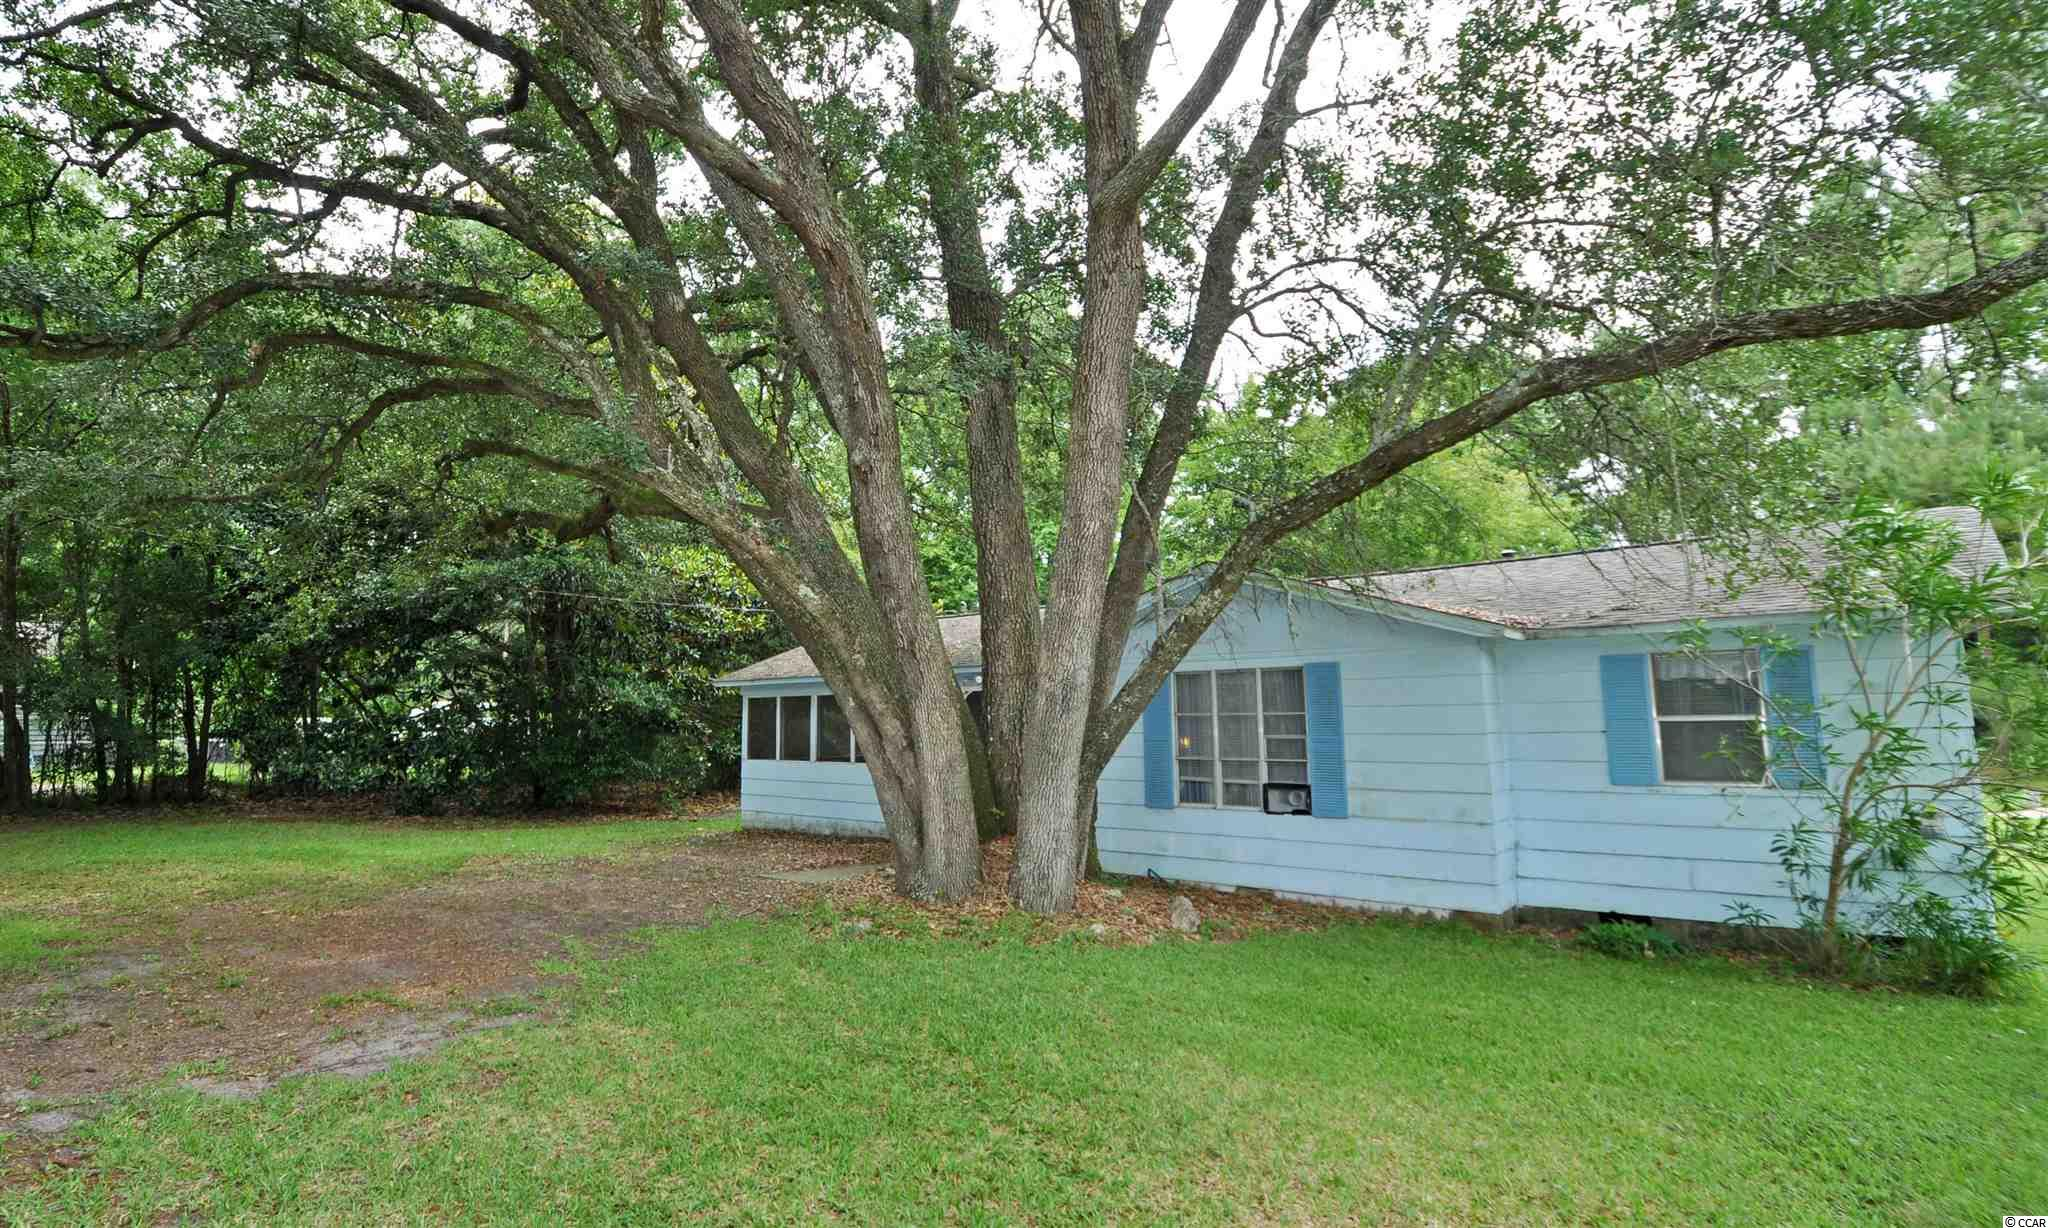 This is the quintessential Southern cottage, an appealing light blue color, instant charm and movie-script landscaping with its signature live oak and impressive mature magnolia trees and set back on a wonderful, over-sized lot for privacy and innumerable-use-options.  This attractive 3 bedroom/1 bath residential home on a large, half-acre-plus property is secluded but is conveniently located near many businesses and is in the desirable Hamlet of Little River, Horry County's second oldest town, which is renown for its proximity to the Atlantic Ocean via the ICW and rich nautical history including being a notorious, popular pirate port. For boaters, there are several marinas nearby to buy or to rent boat slips. For golfers, there are numerous signature golf courses, plus restaurants, antique and thrift trails, recreation, shopping, access to major highways and medical services, and good schools and parks. It adjoins North Myrtle Beach, which was recently named one of the safest cities in the nation and with one of the best beaches in the U.S., the nearby Cherry Grove Beach, minutes away. However, taxes are levied at low, low Horry County rates. View this inviting, well-priced rustic charmer with magnificent indigenous landscaping for a personal residence, rental or with potential for investment. As it is located near the casino boats, great restaurants, the historic district with its own legendary live oaks and the riverfront/Intracoastal Waterway where development is expected and may include a fishing-village-inspired concept with marshwalk and a marina. This is a spacious lot, and the cottage itself immediately beckons with a coveted wrap-around screened porch and lots of room to comfortably park cars in the designated tandem front-yard entry. The yard itself, of course, is equally appreciated, for its grand square footage and possibilities. Bedrooms are unexpectedly spacious, too, and have notable closets; and there is a larger jack 'n jill bath which is modernize